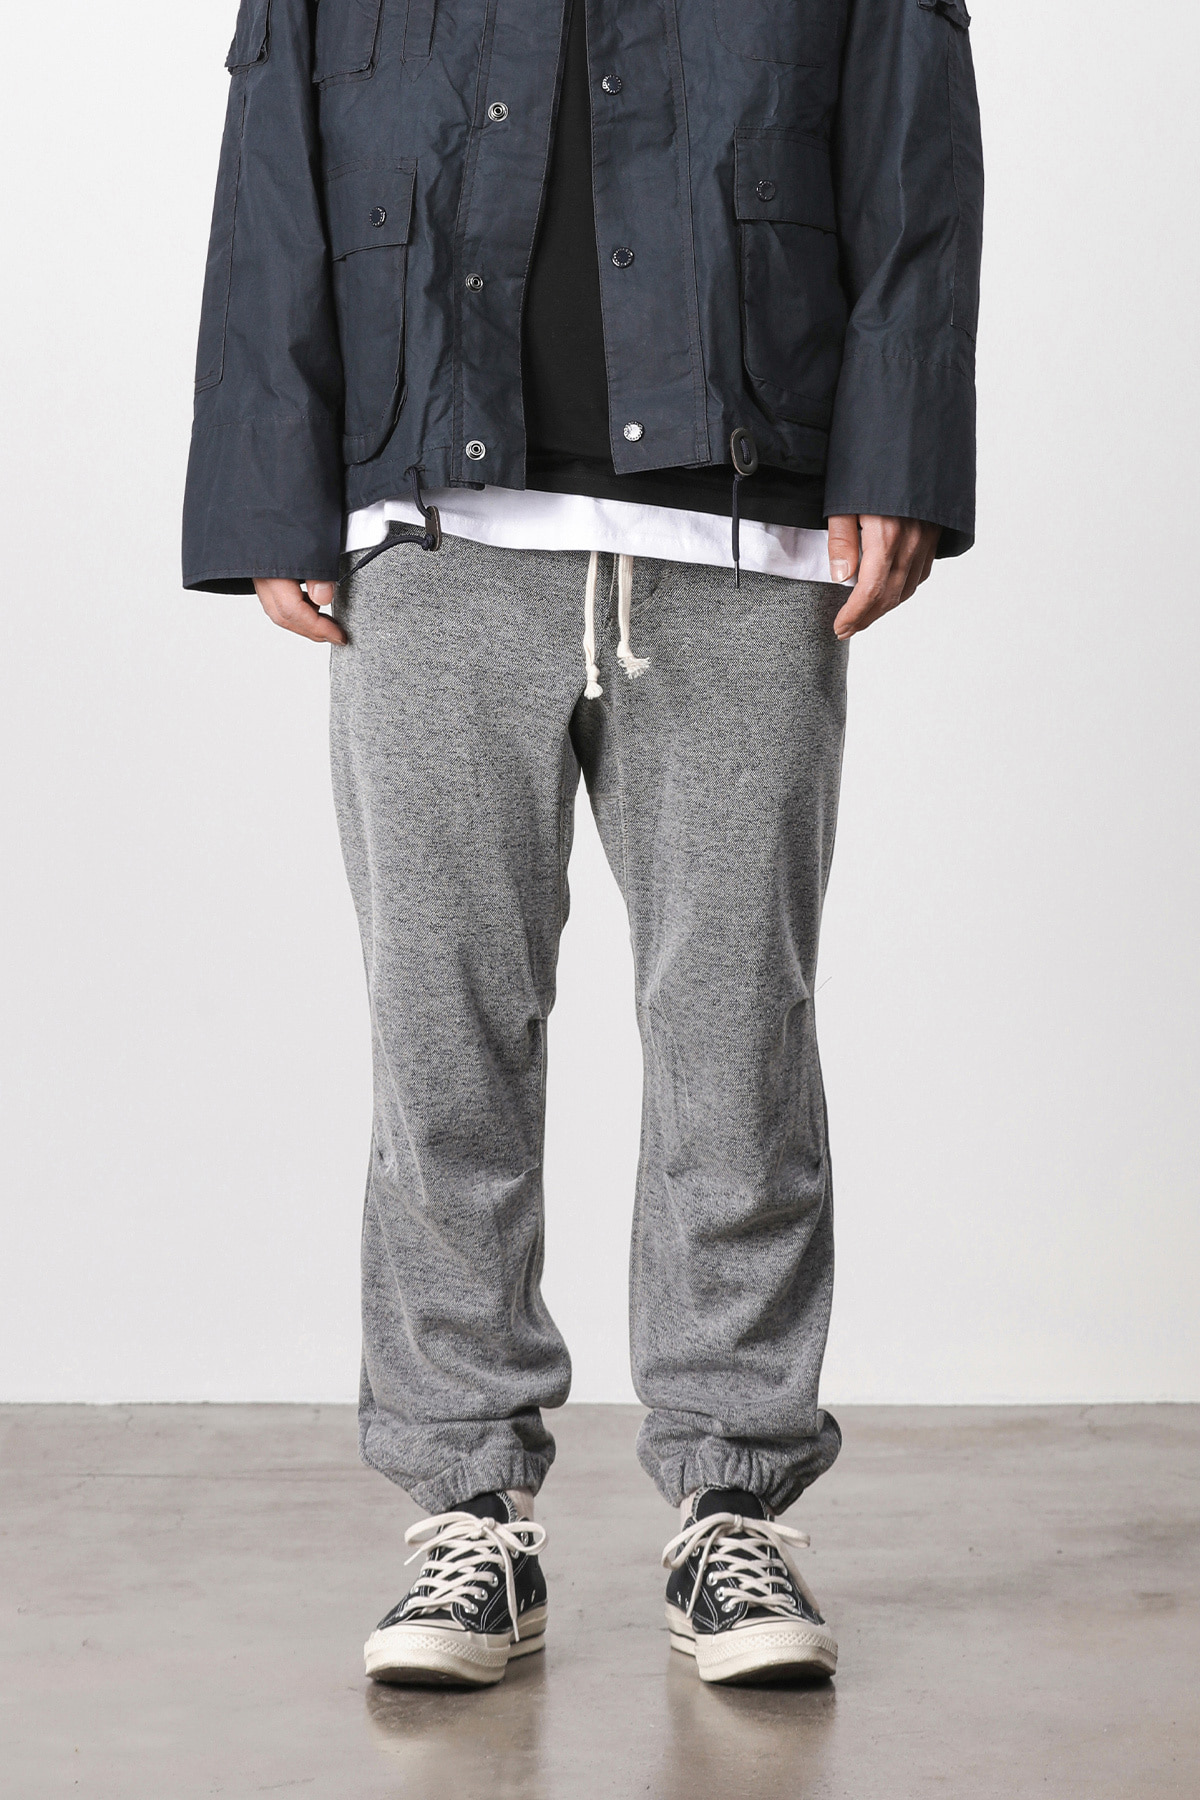 페이탈리즘 #jp15 Melange training jogger pants (navy)